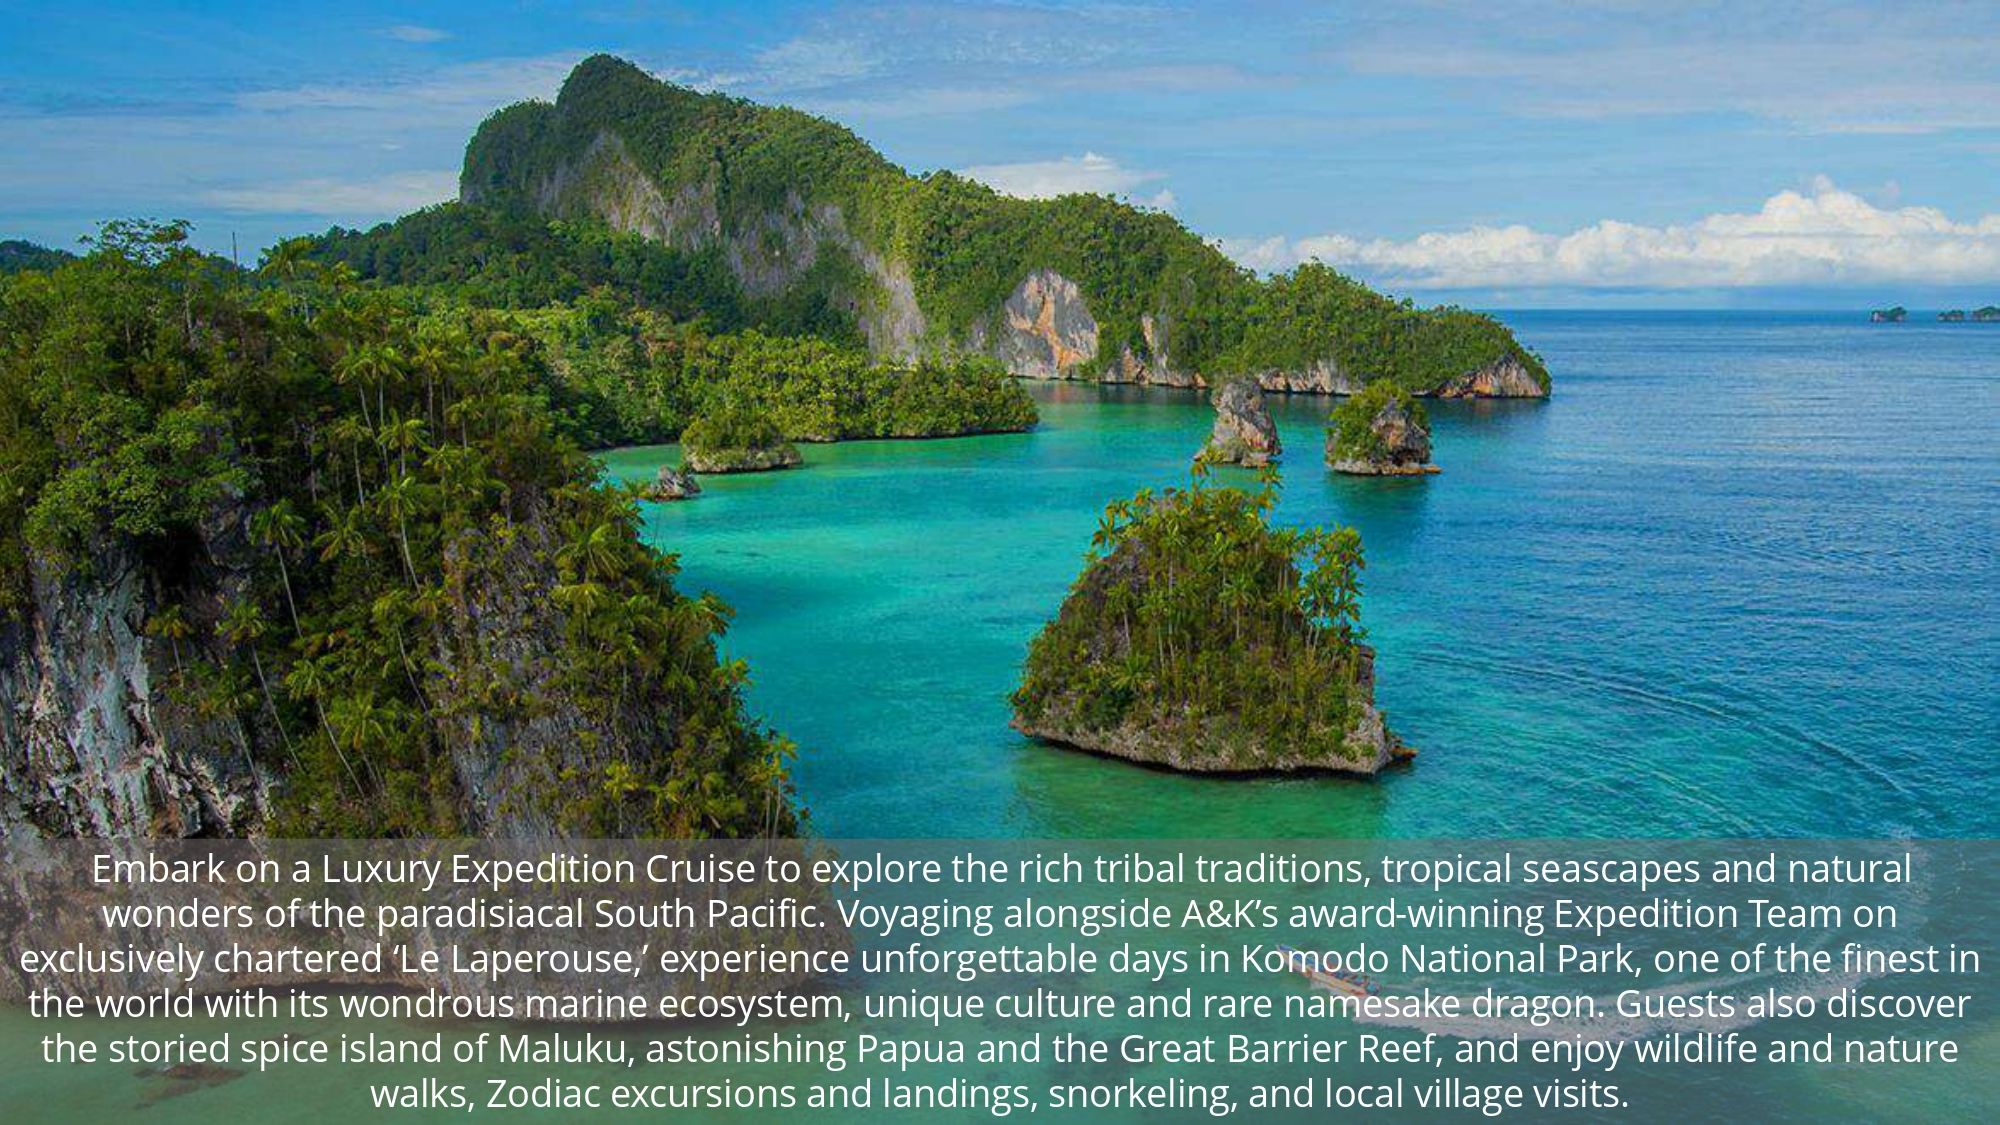 2022, 21 Nov to 7 Dec - South Pacific Voyage, Papua & Great Barrier Reef_page-0003